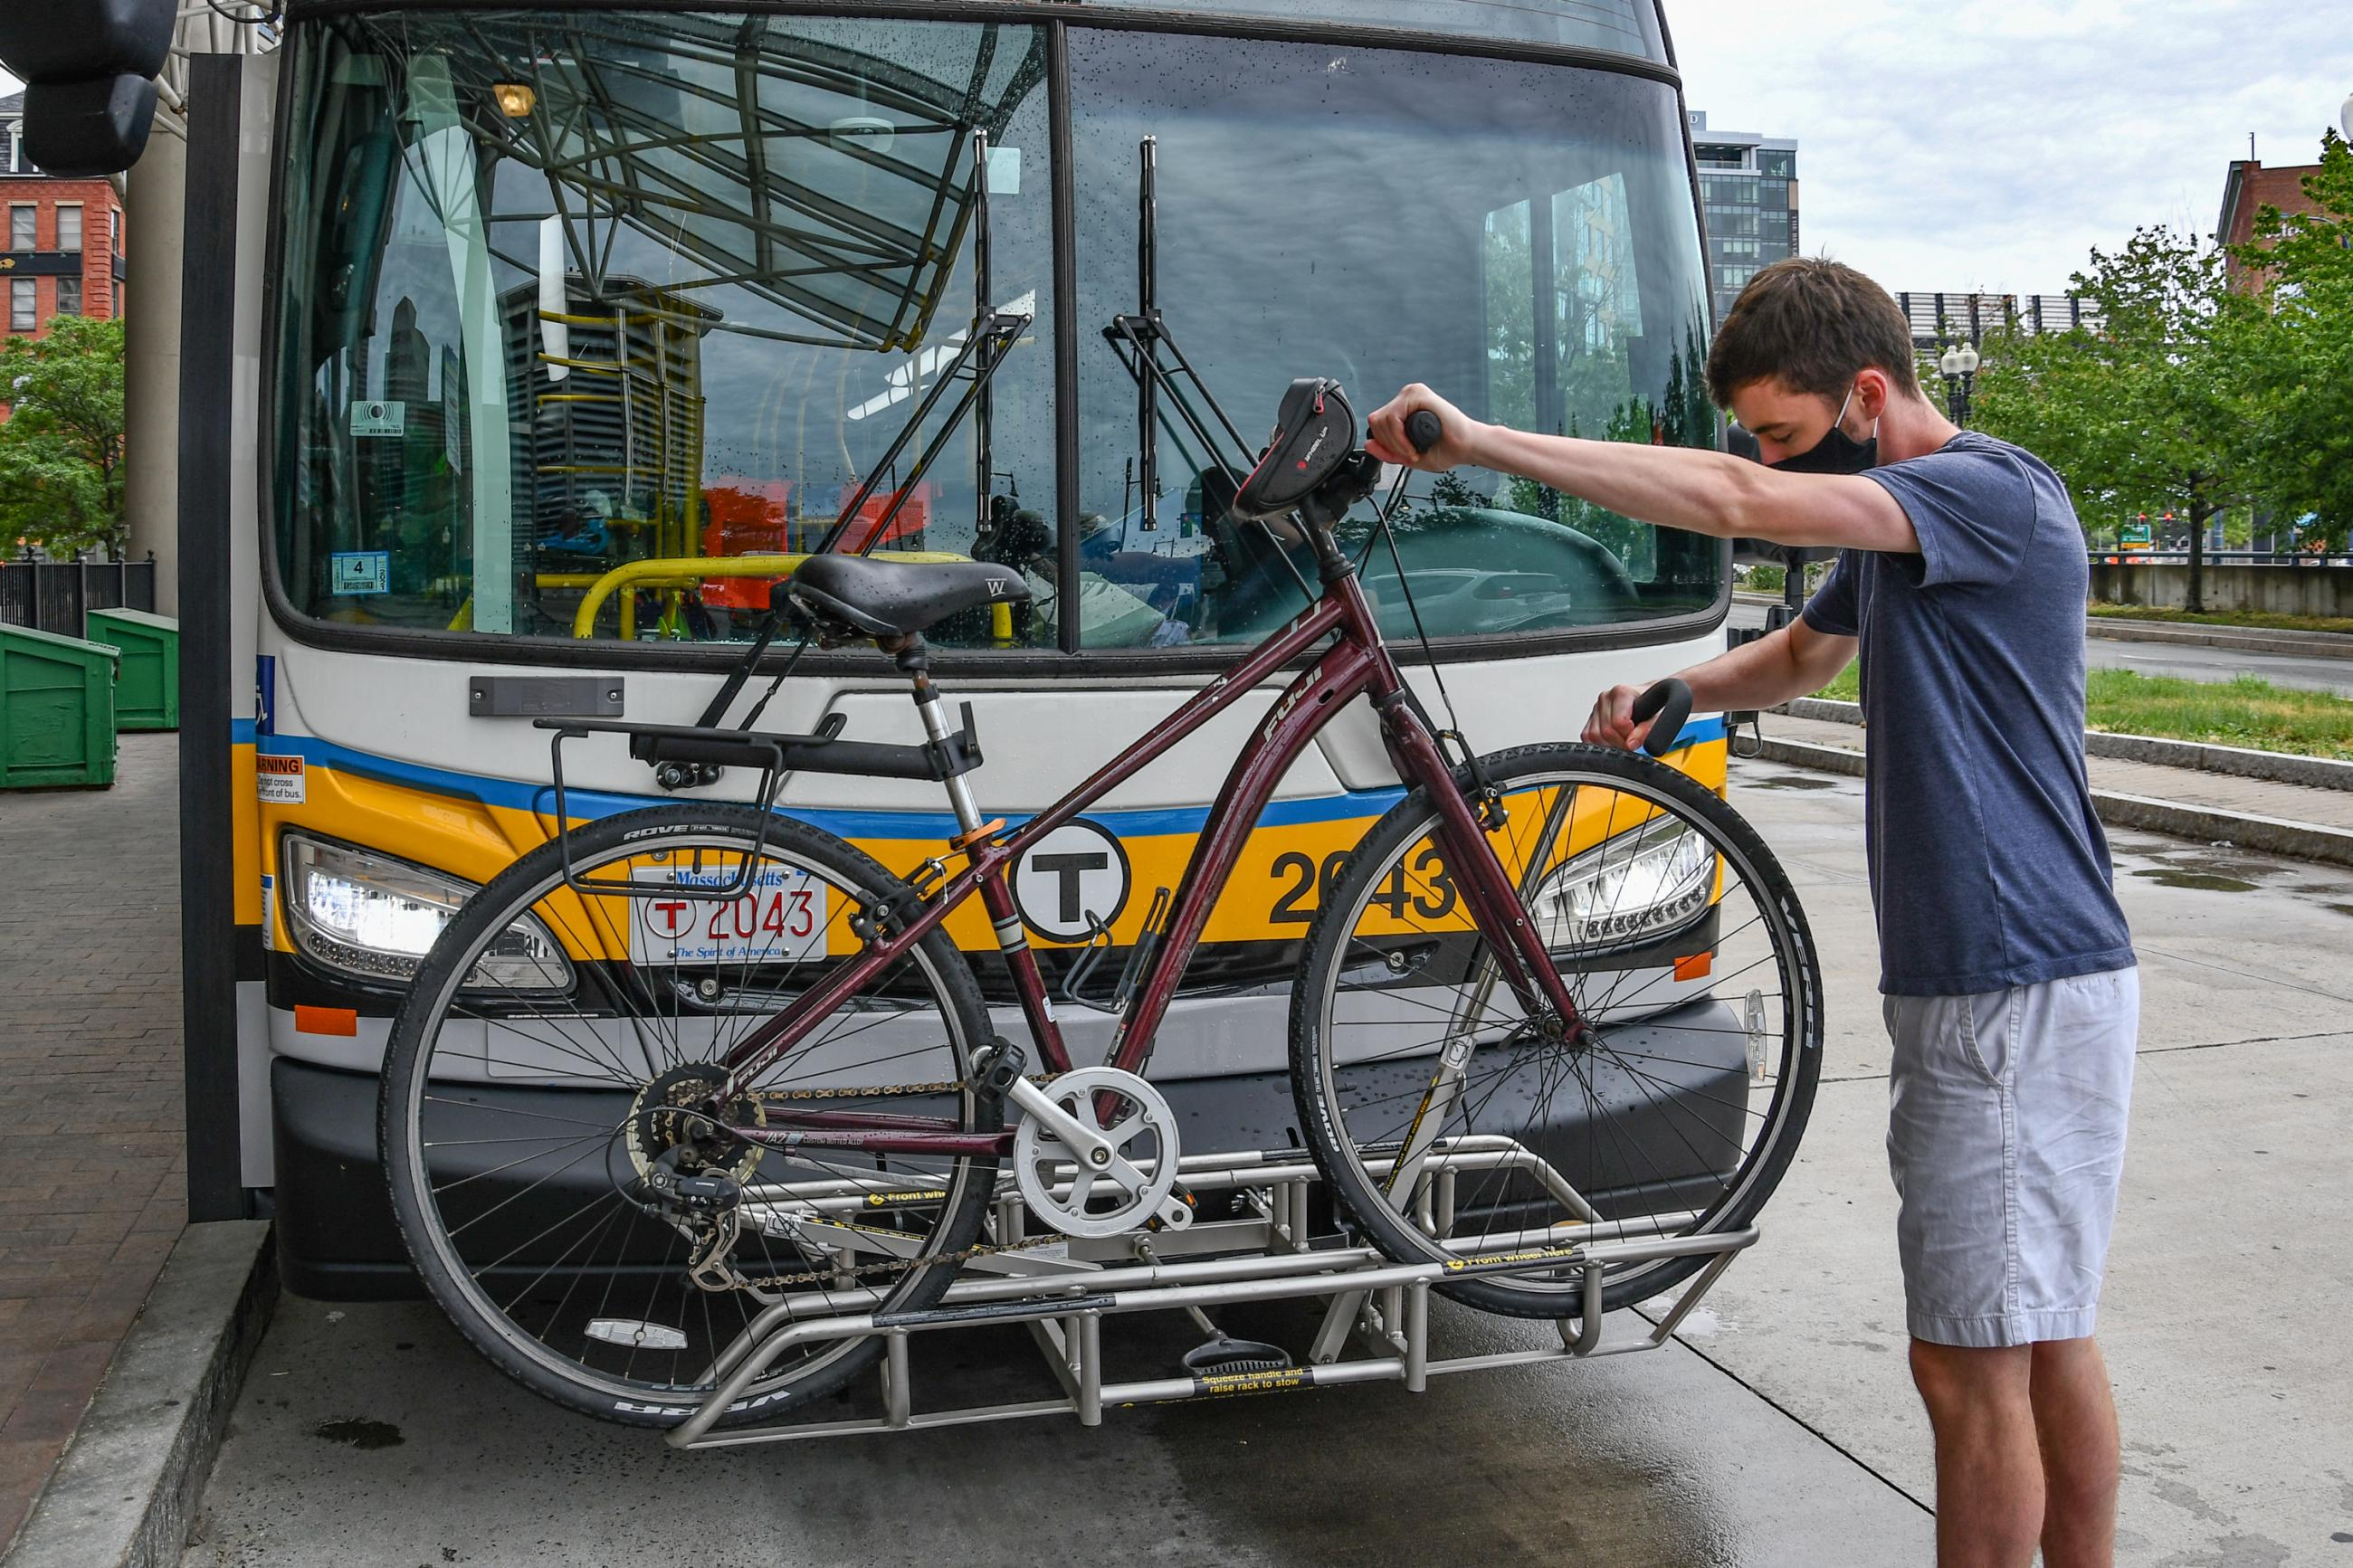 A person secures a bicycle on the bike rack on the front of a bus at Haymarket station